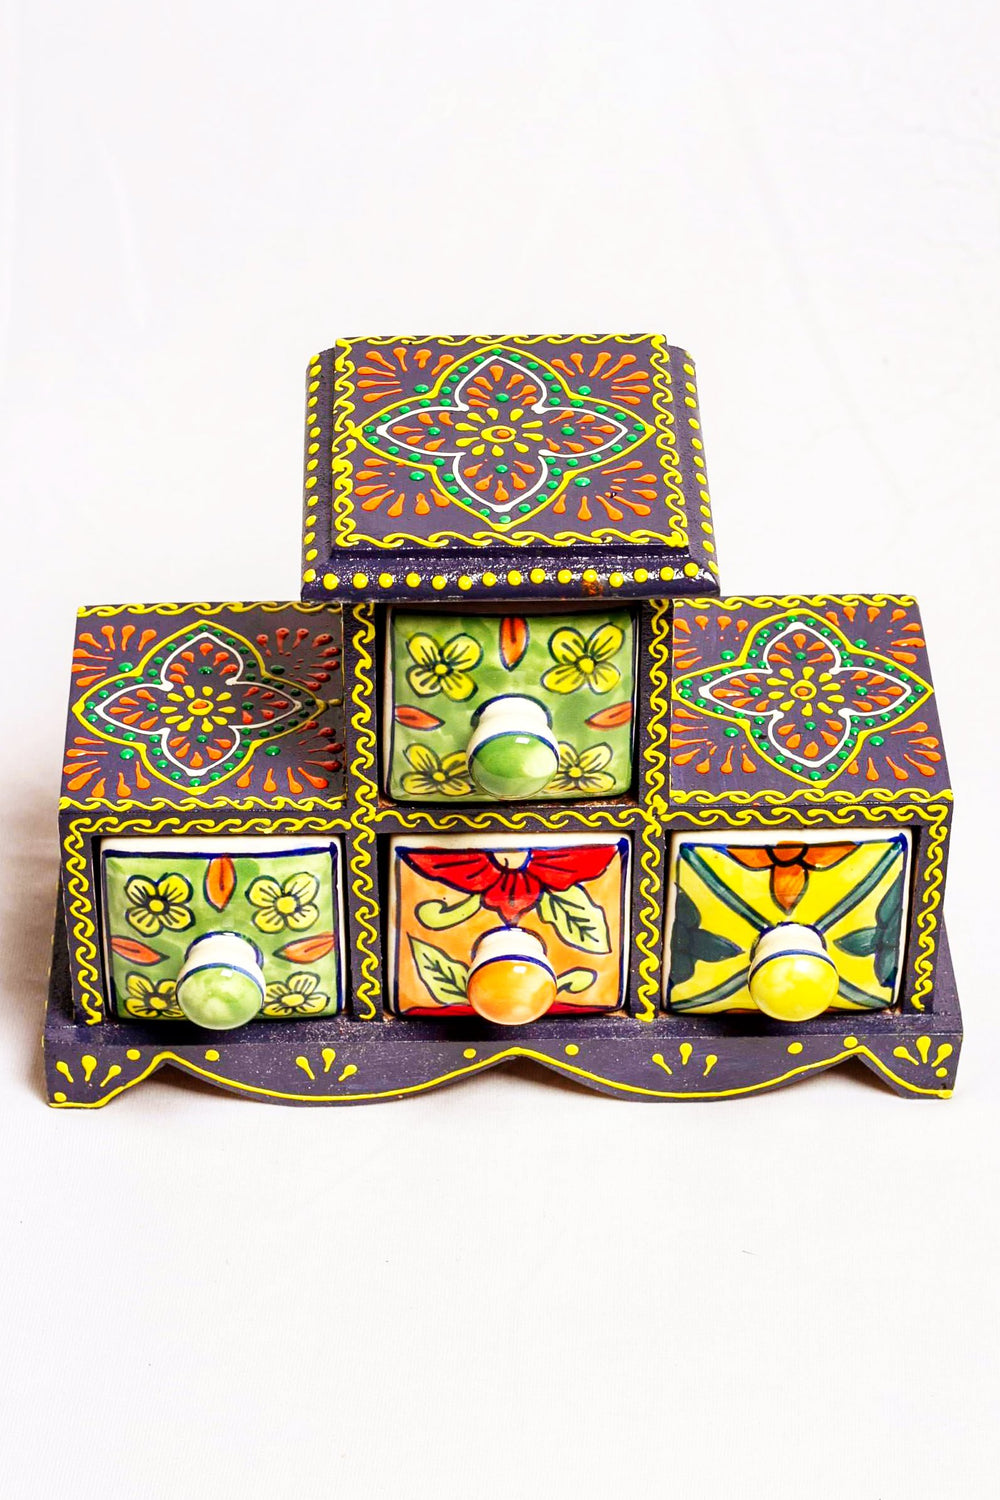 Four drawers in a black framed wooden box with painted motifs, with four ceramic drawers